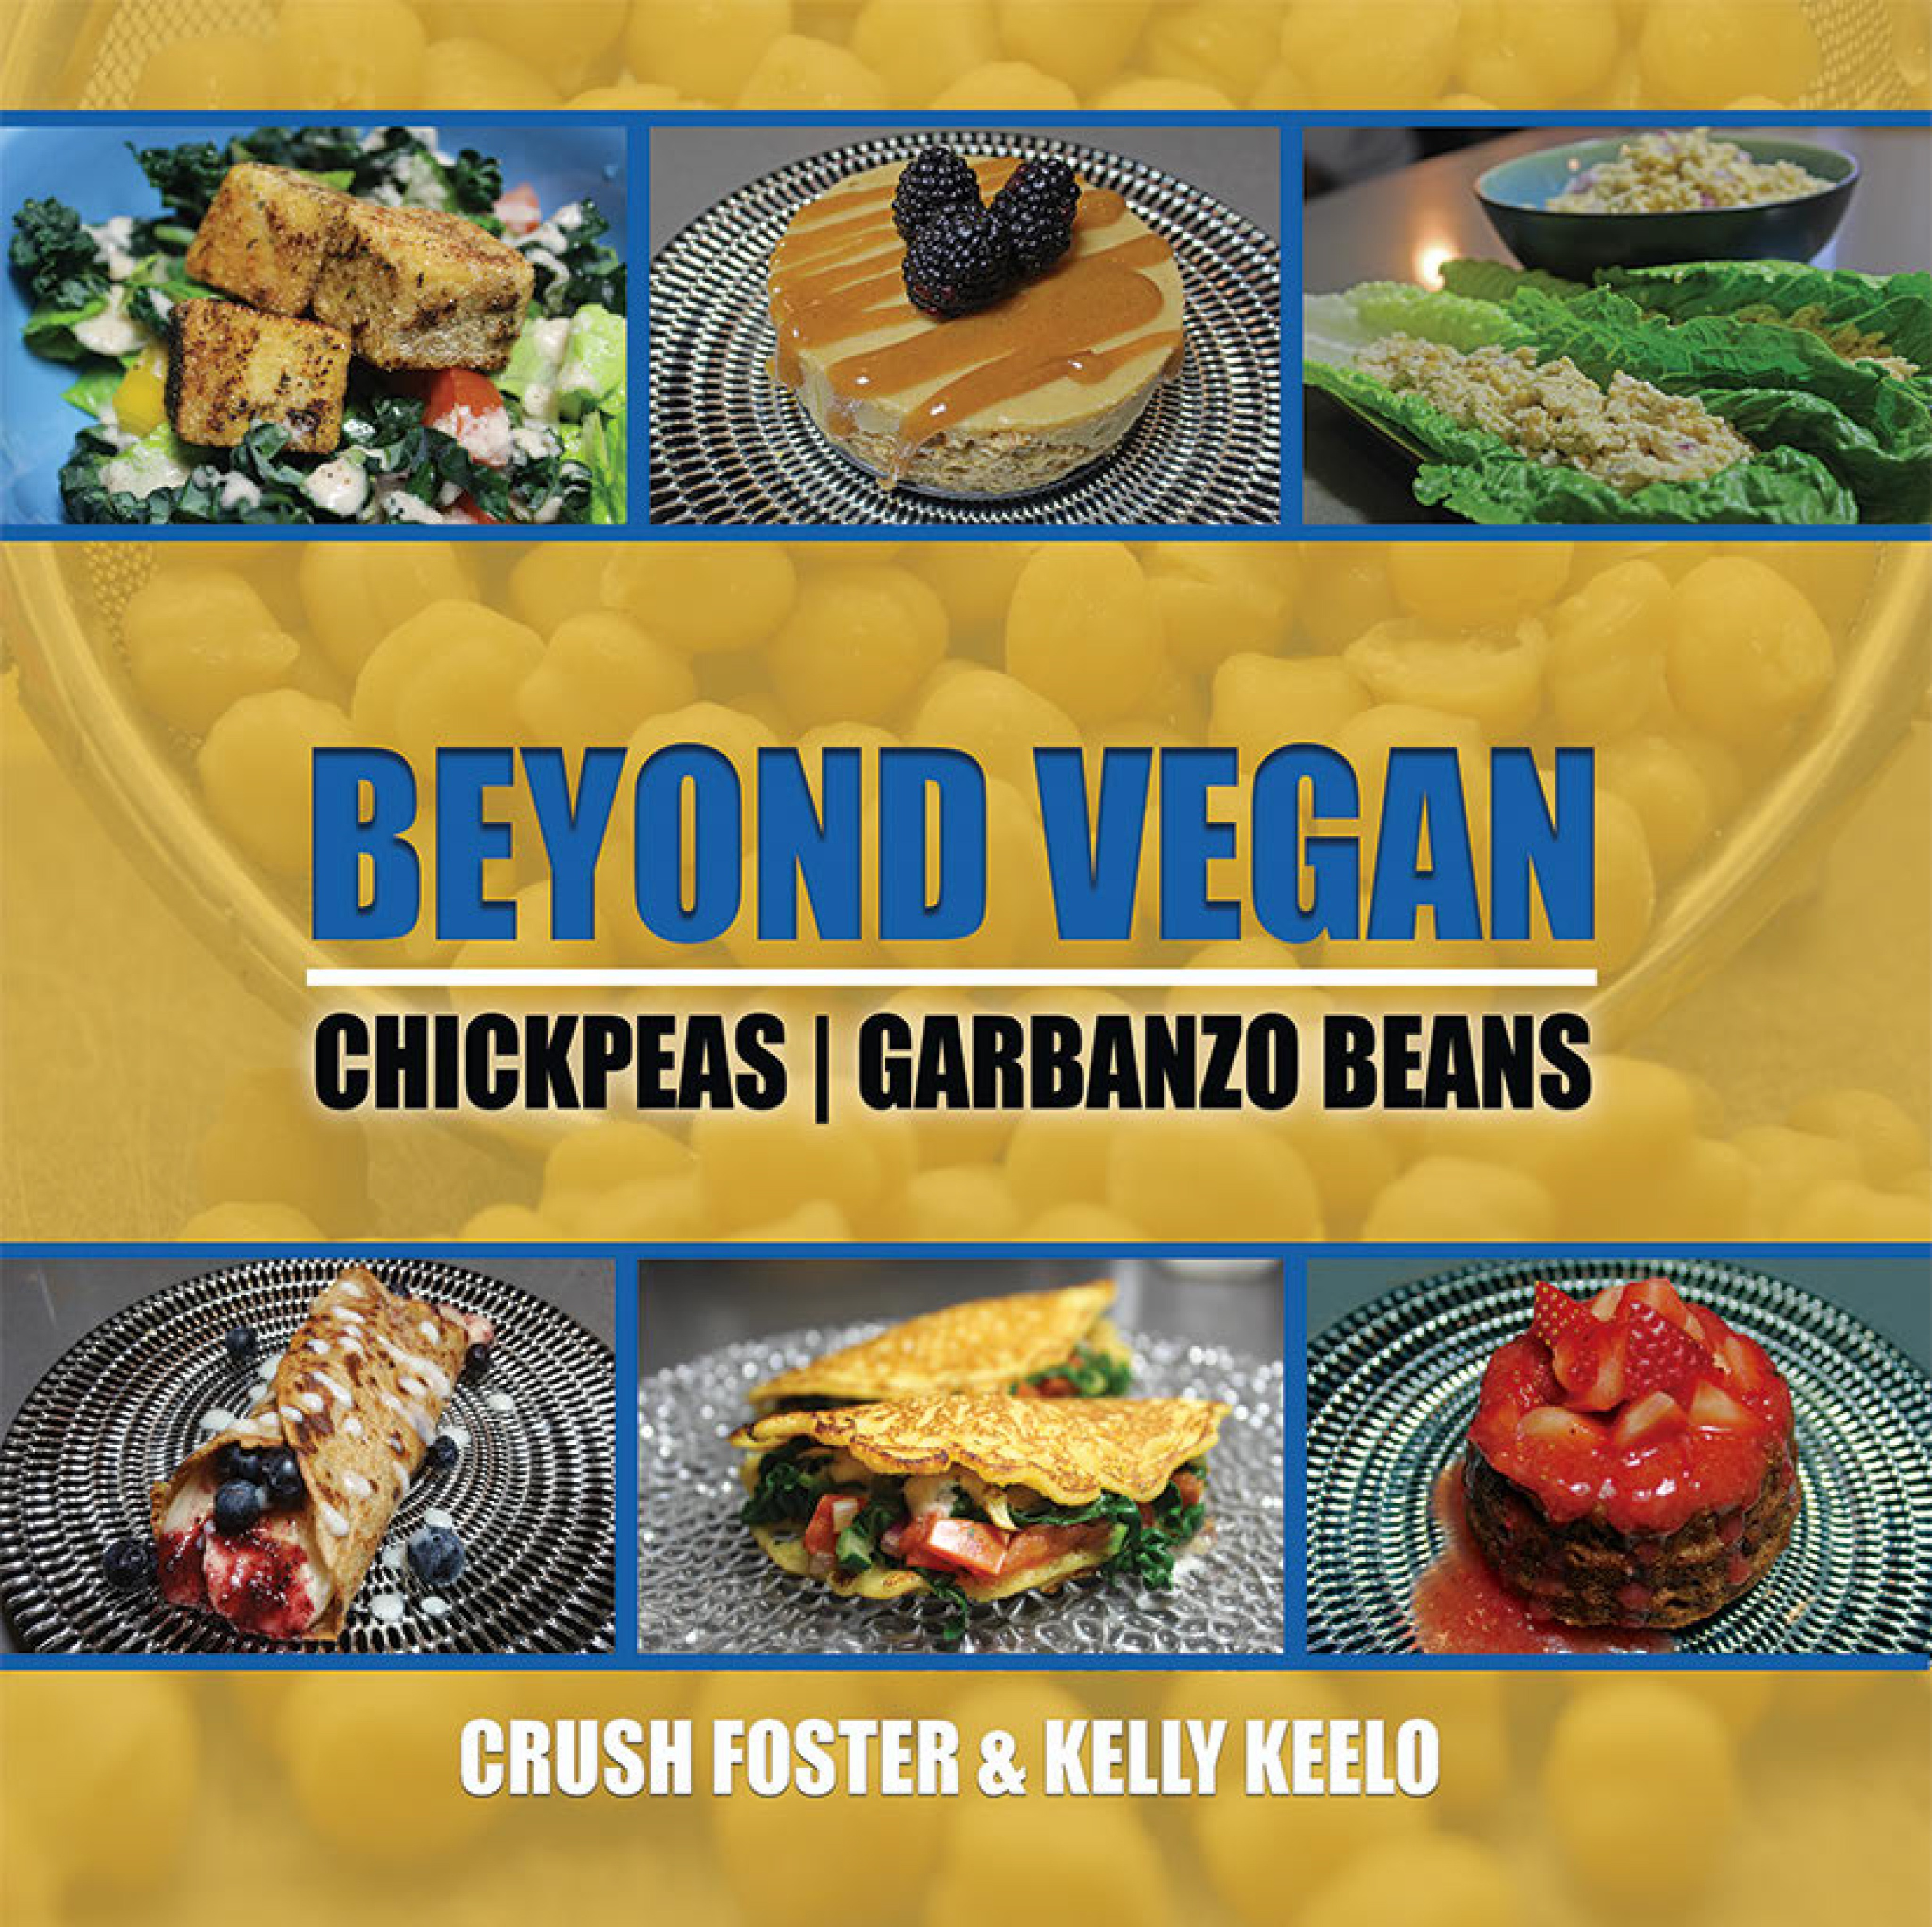 BEYOND VEGAN | CHICKPEAS COOKBOOK PAPERBACK